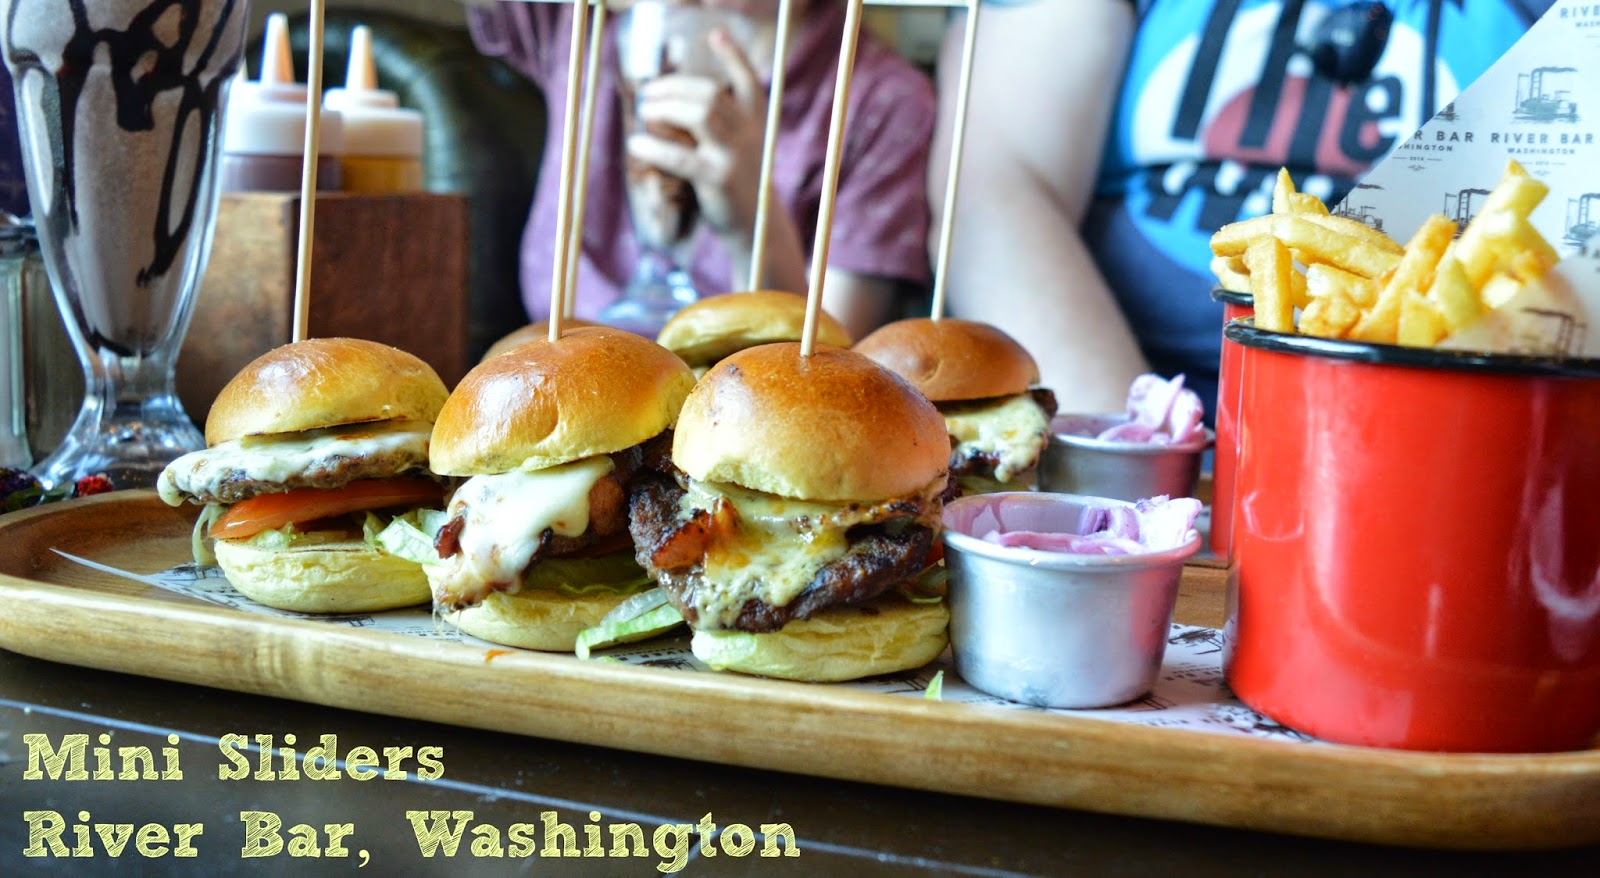 Mini sliders, River bar, Washington